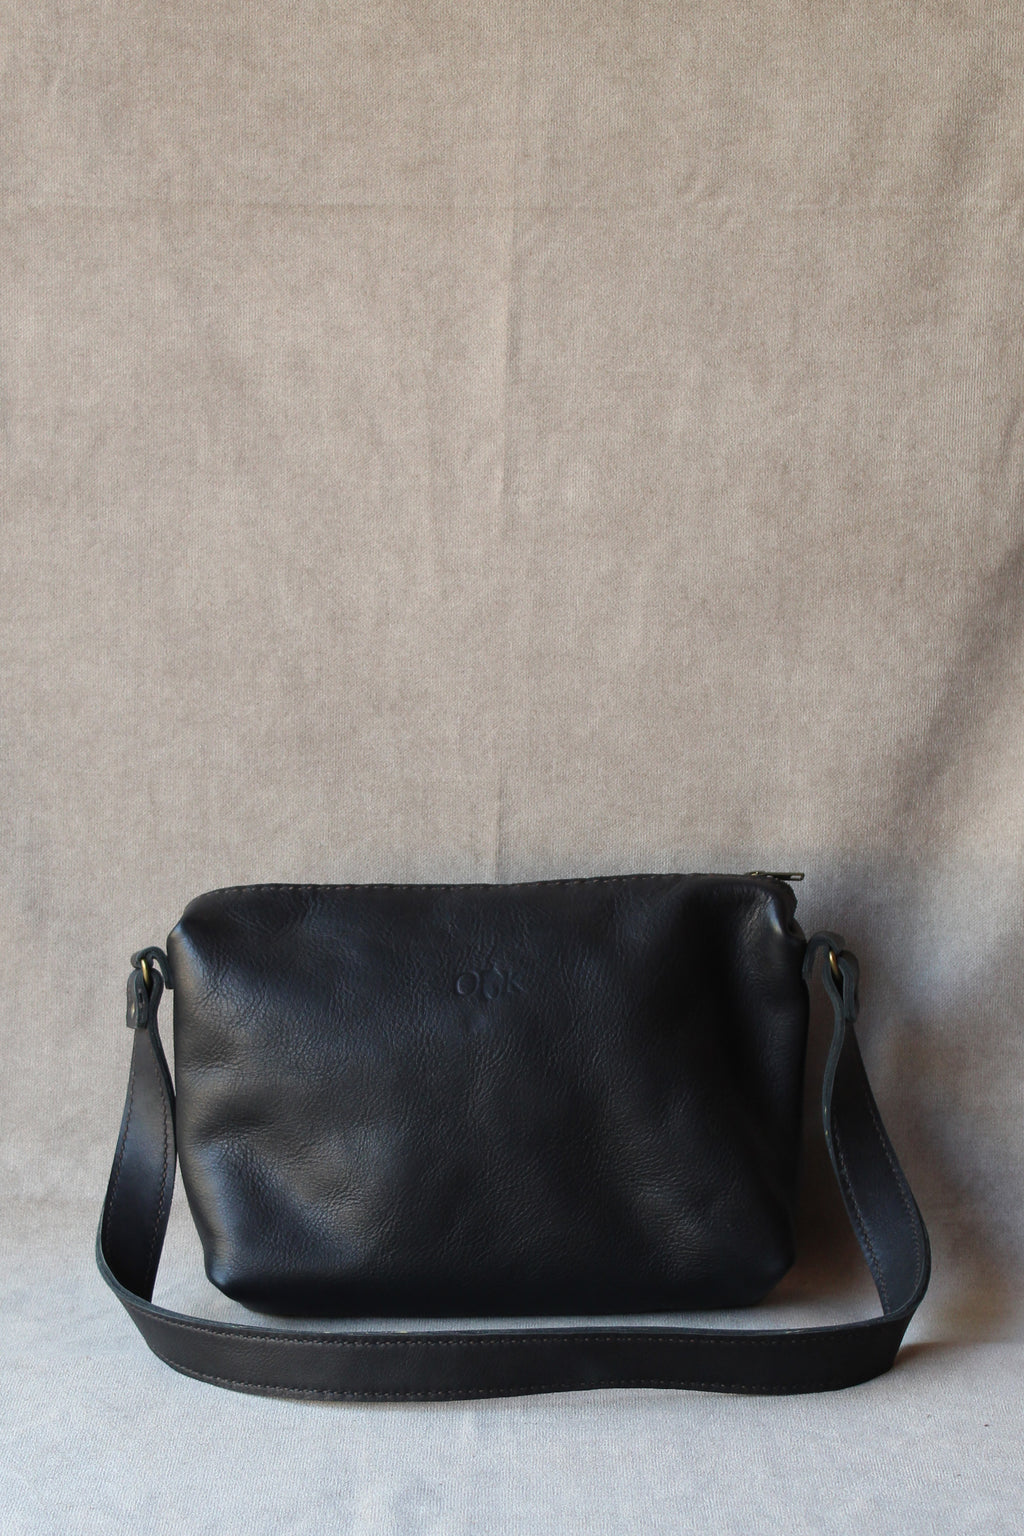 analani handbag in black